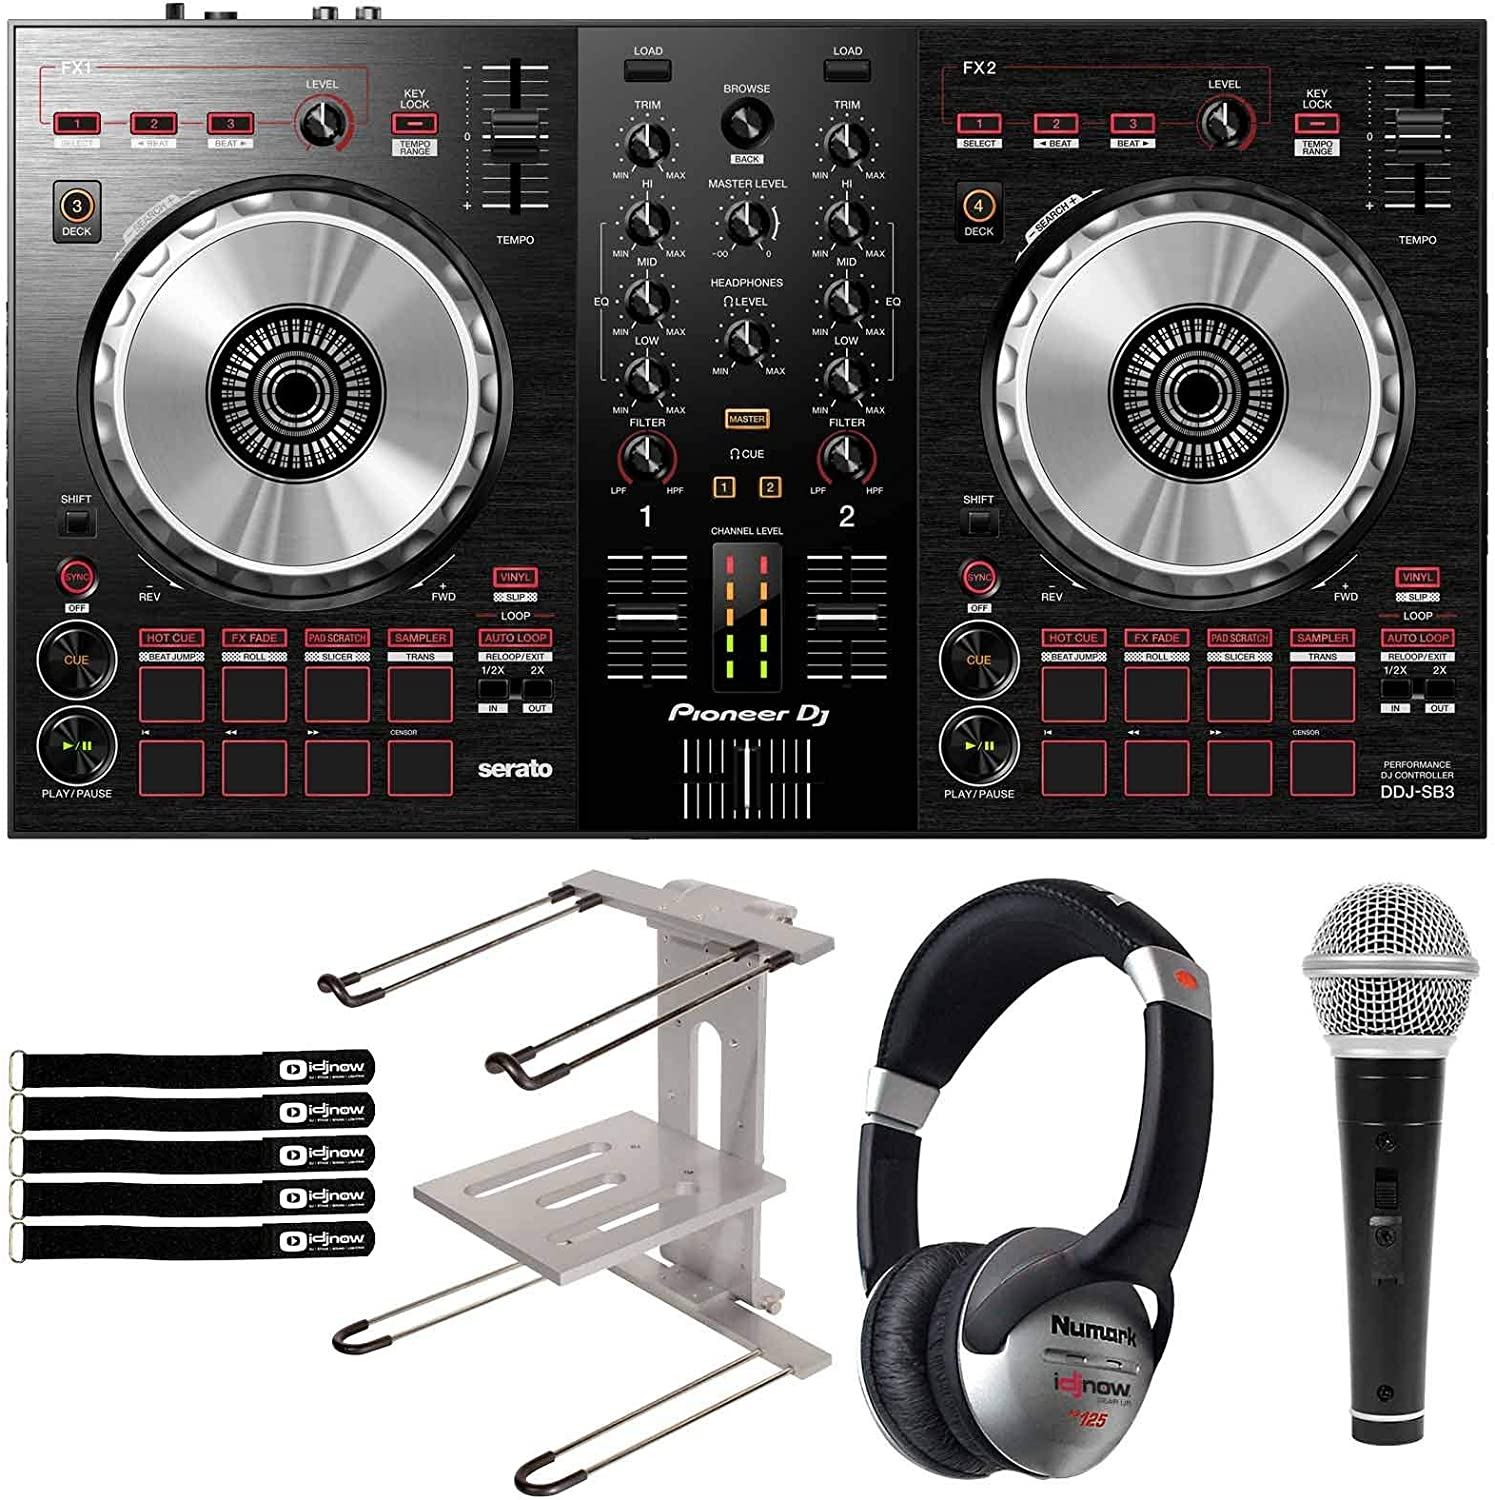 Pioneer DDJ-SB3 Serato DJ Outlet SALE Built In Mixer Beauty products Software w L Controller